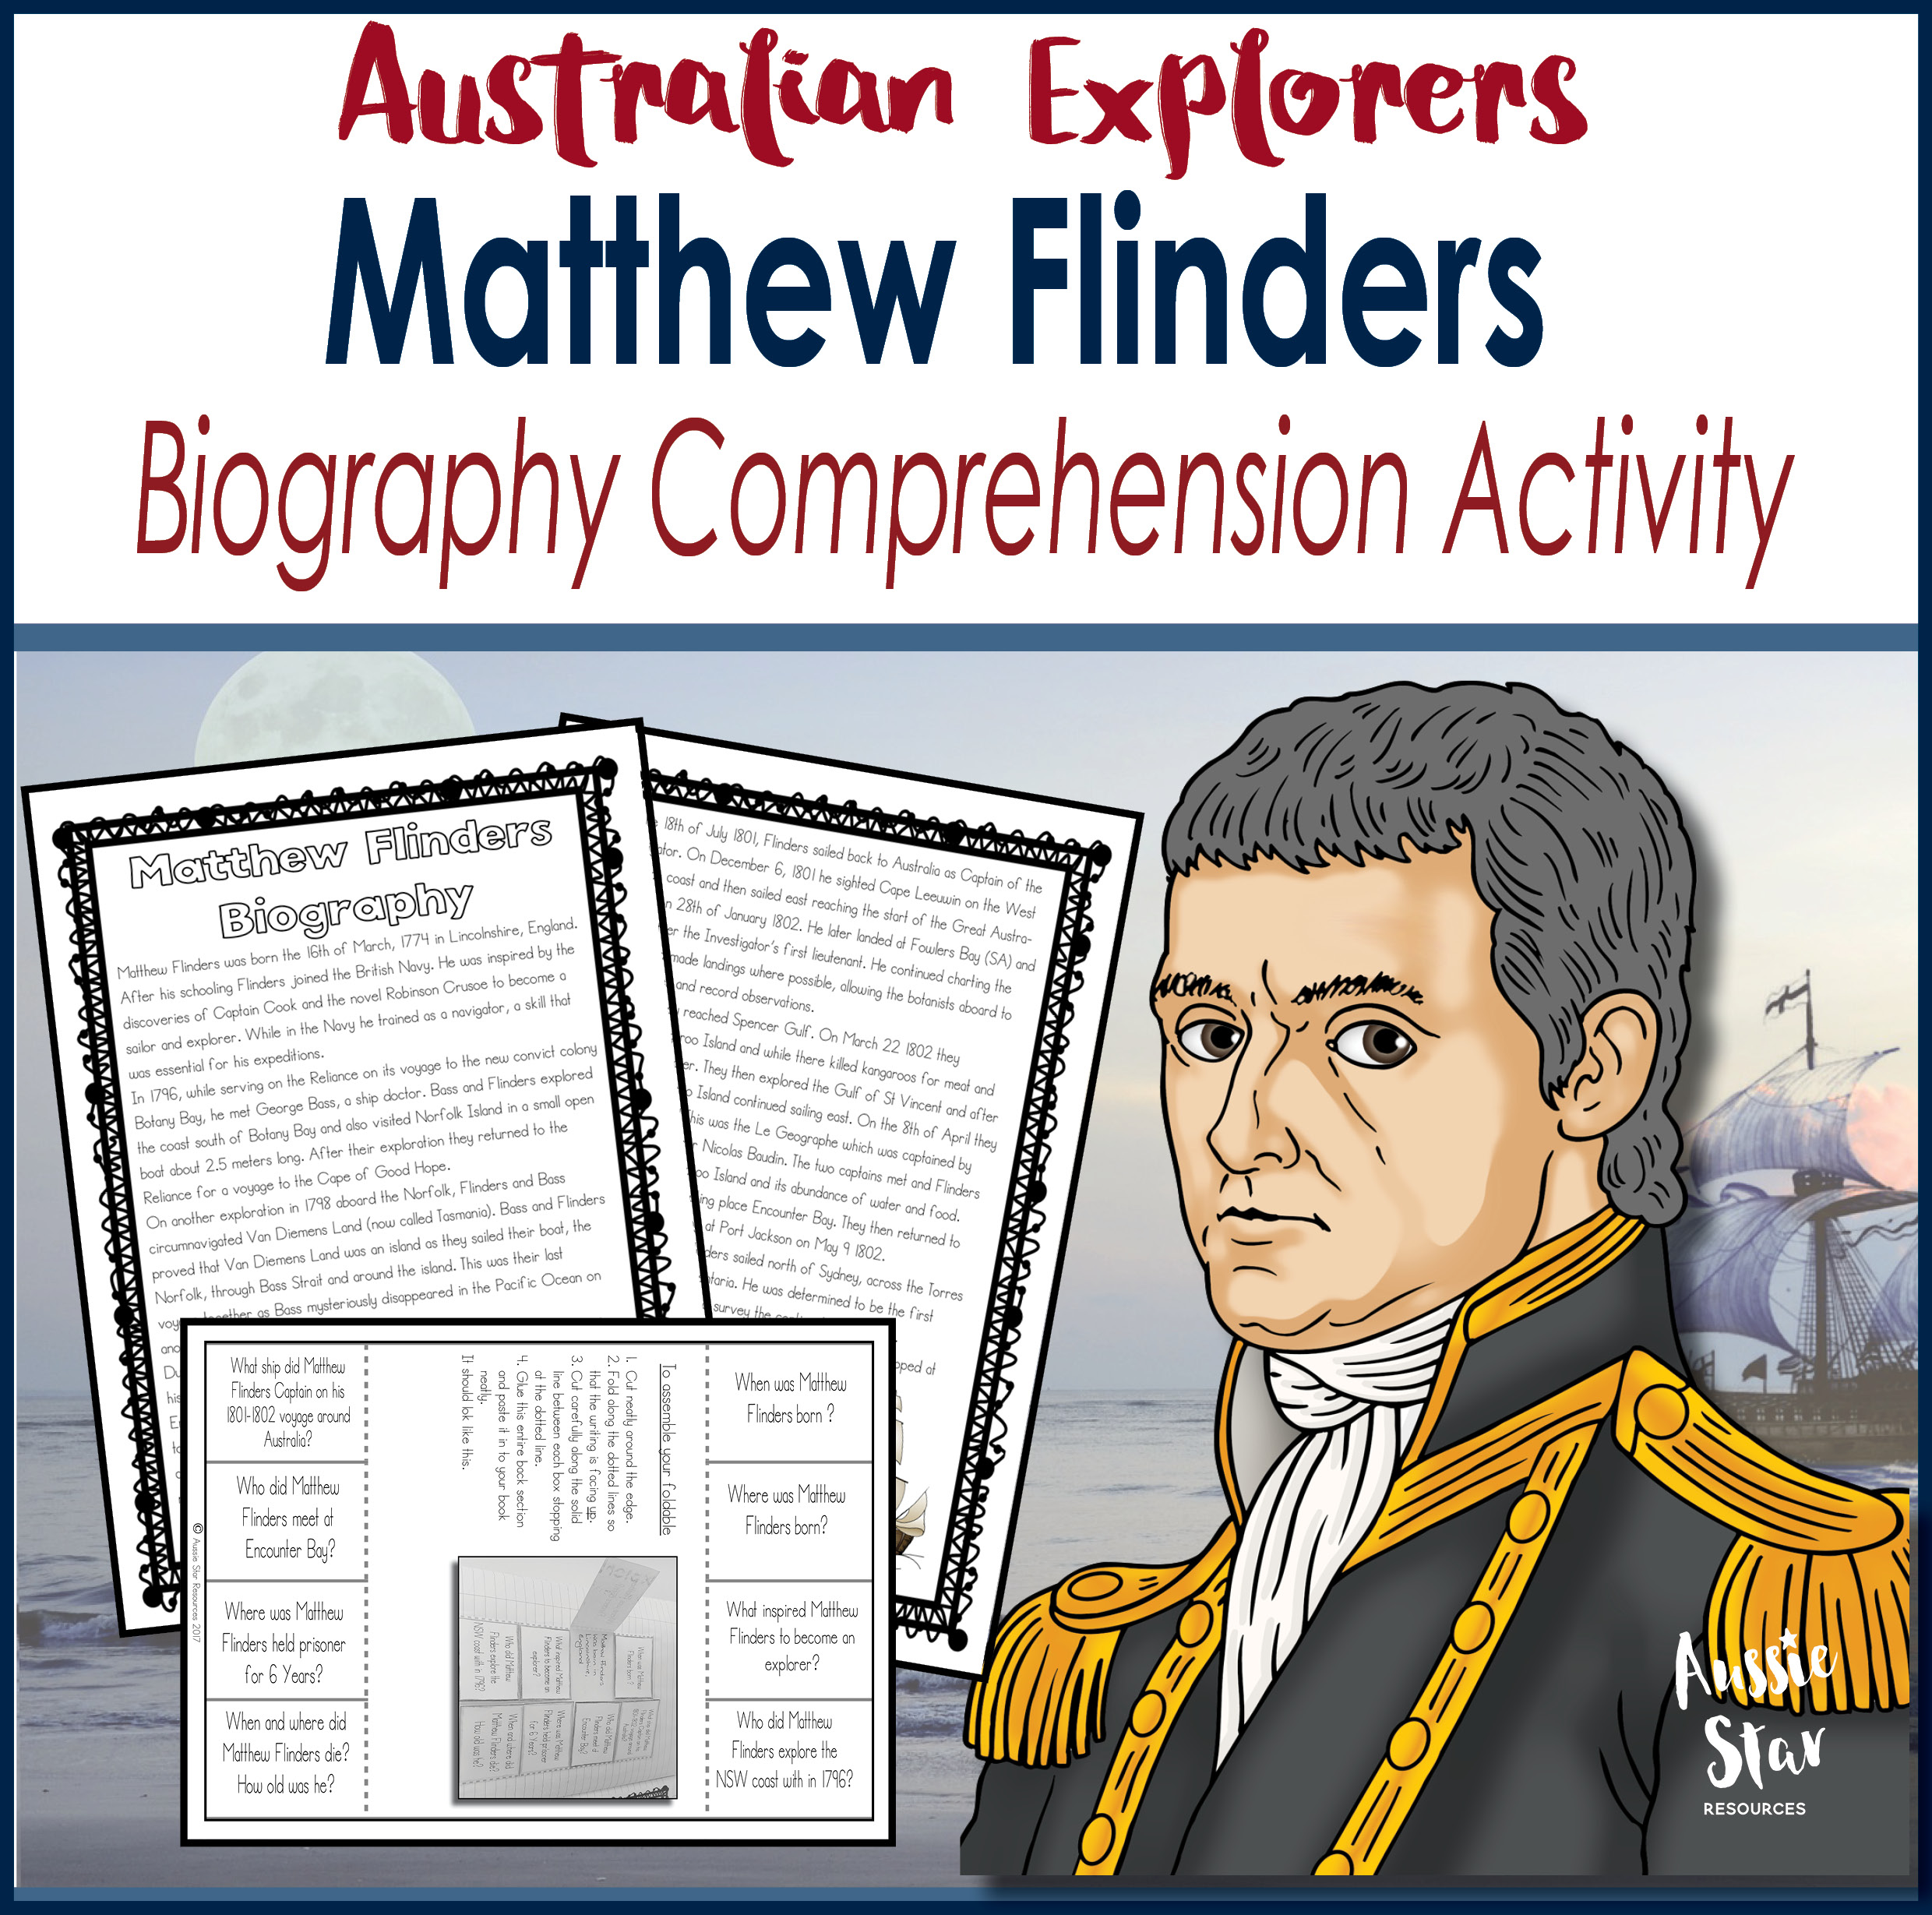 Matthew Flinders biography comprehension activity